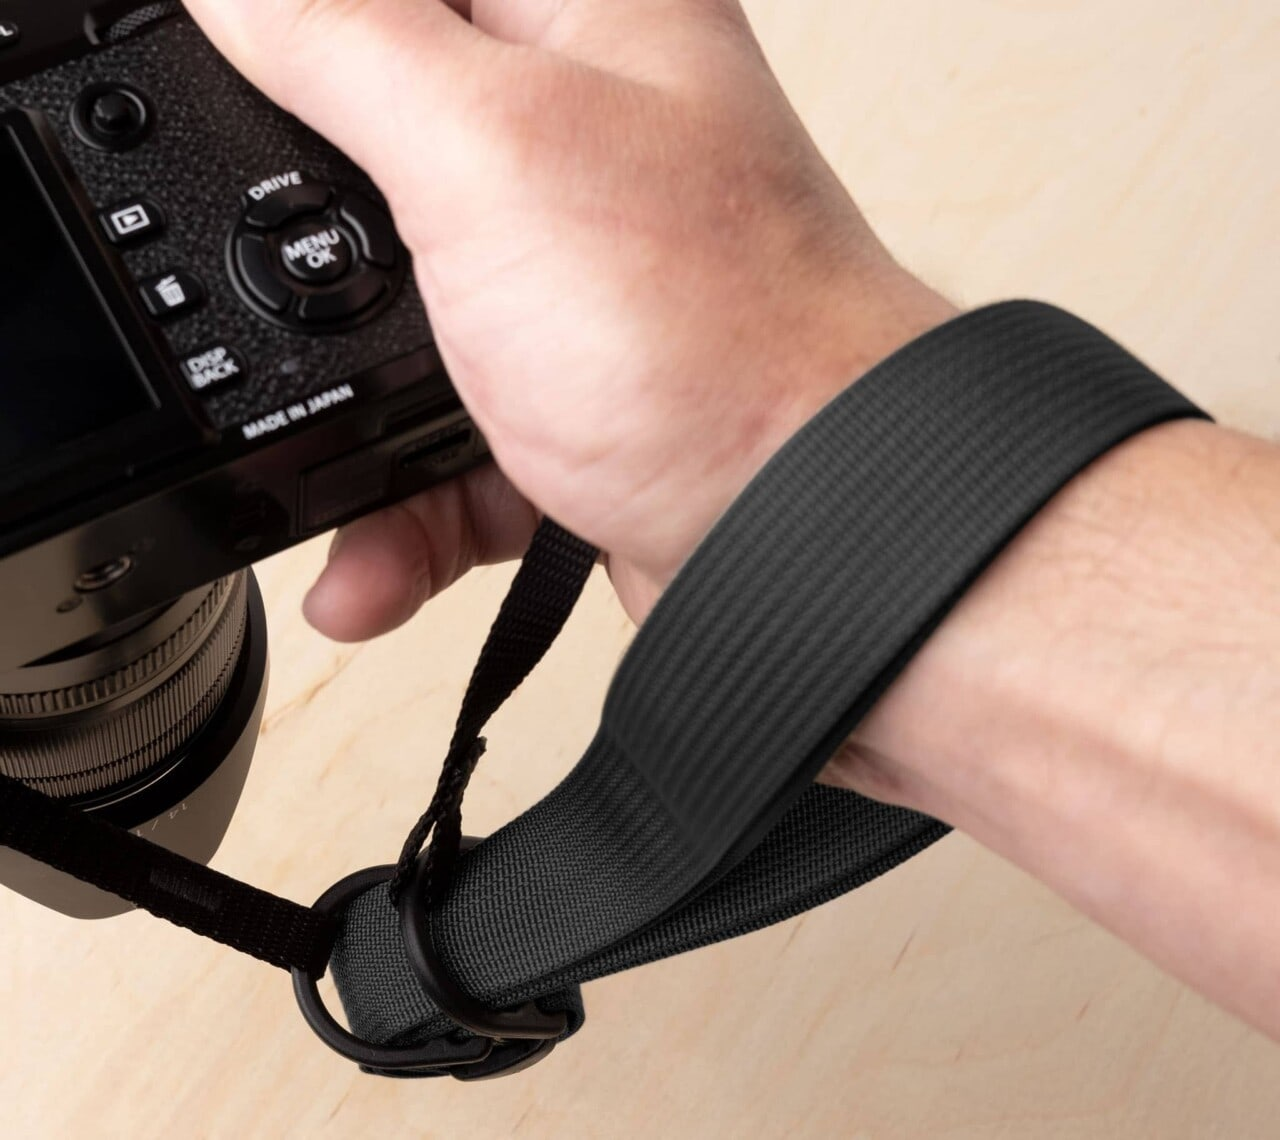 Loop the webbing through the D-rings to use the F1 as a wrist strap.